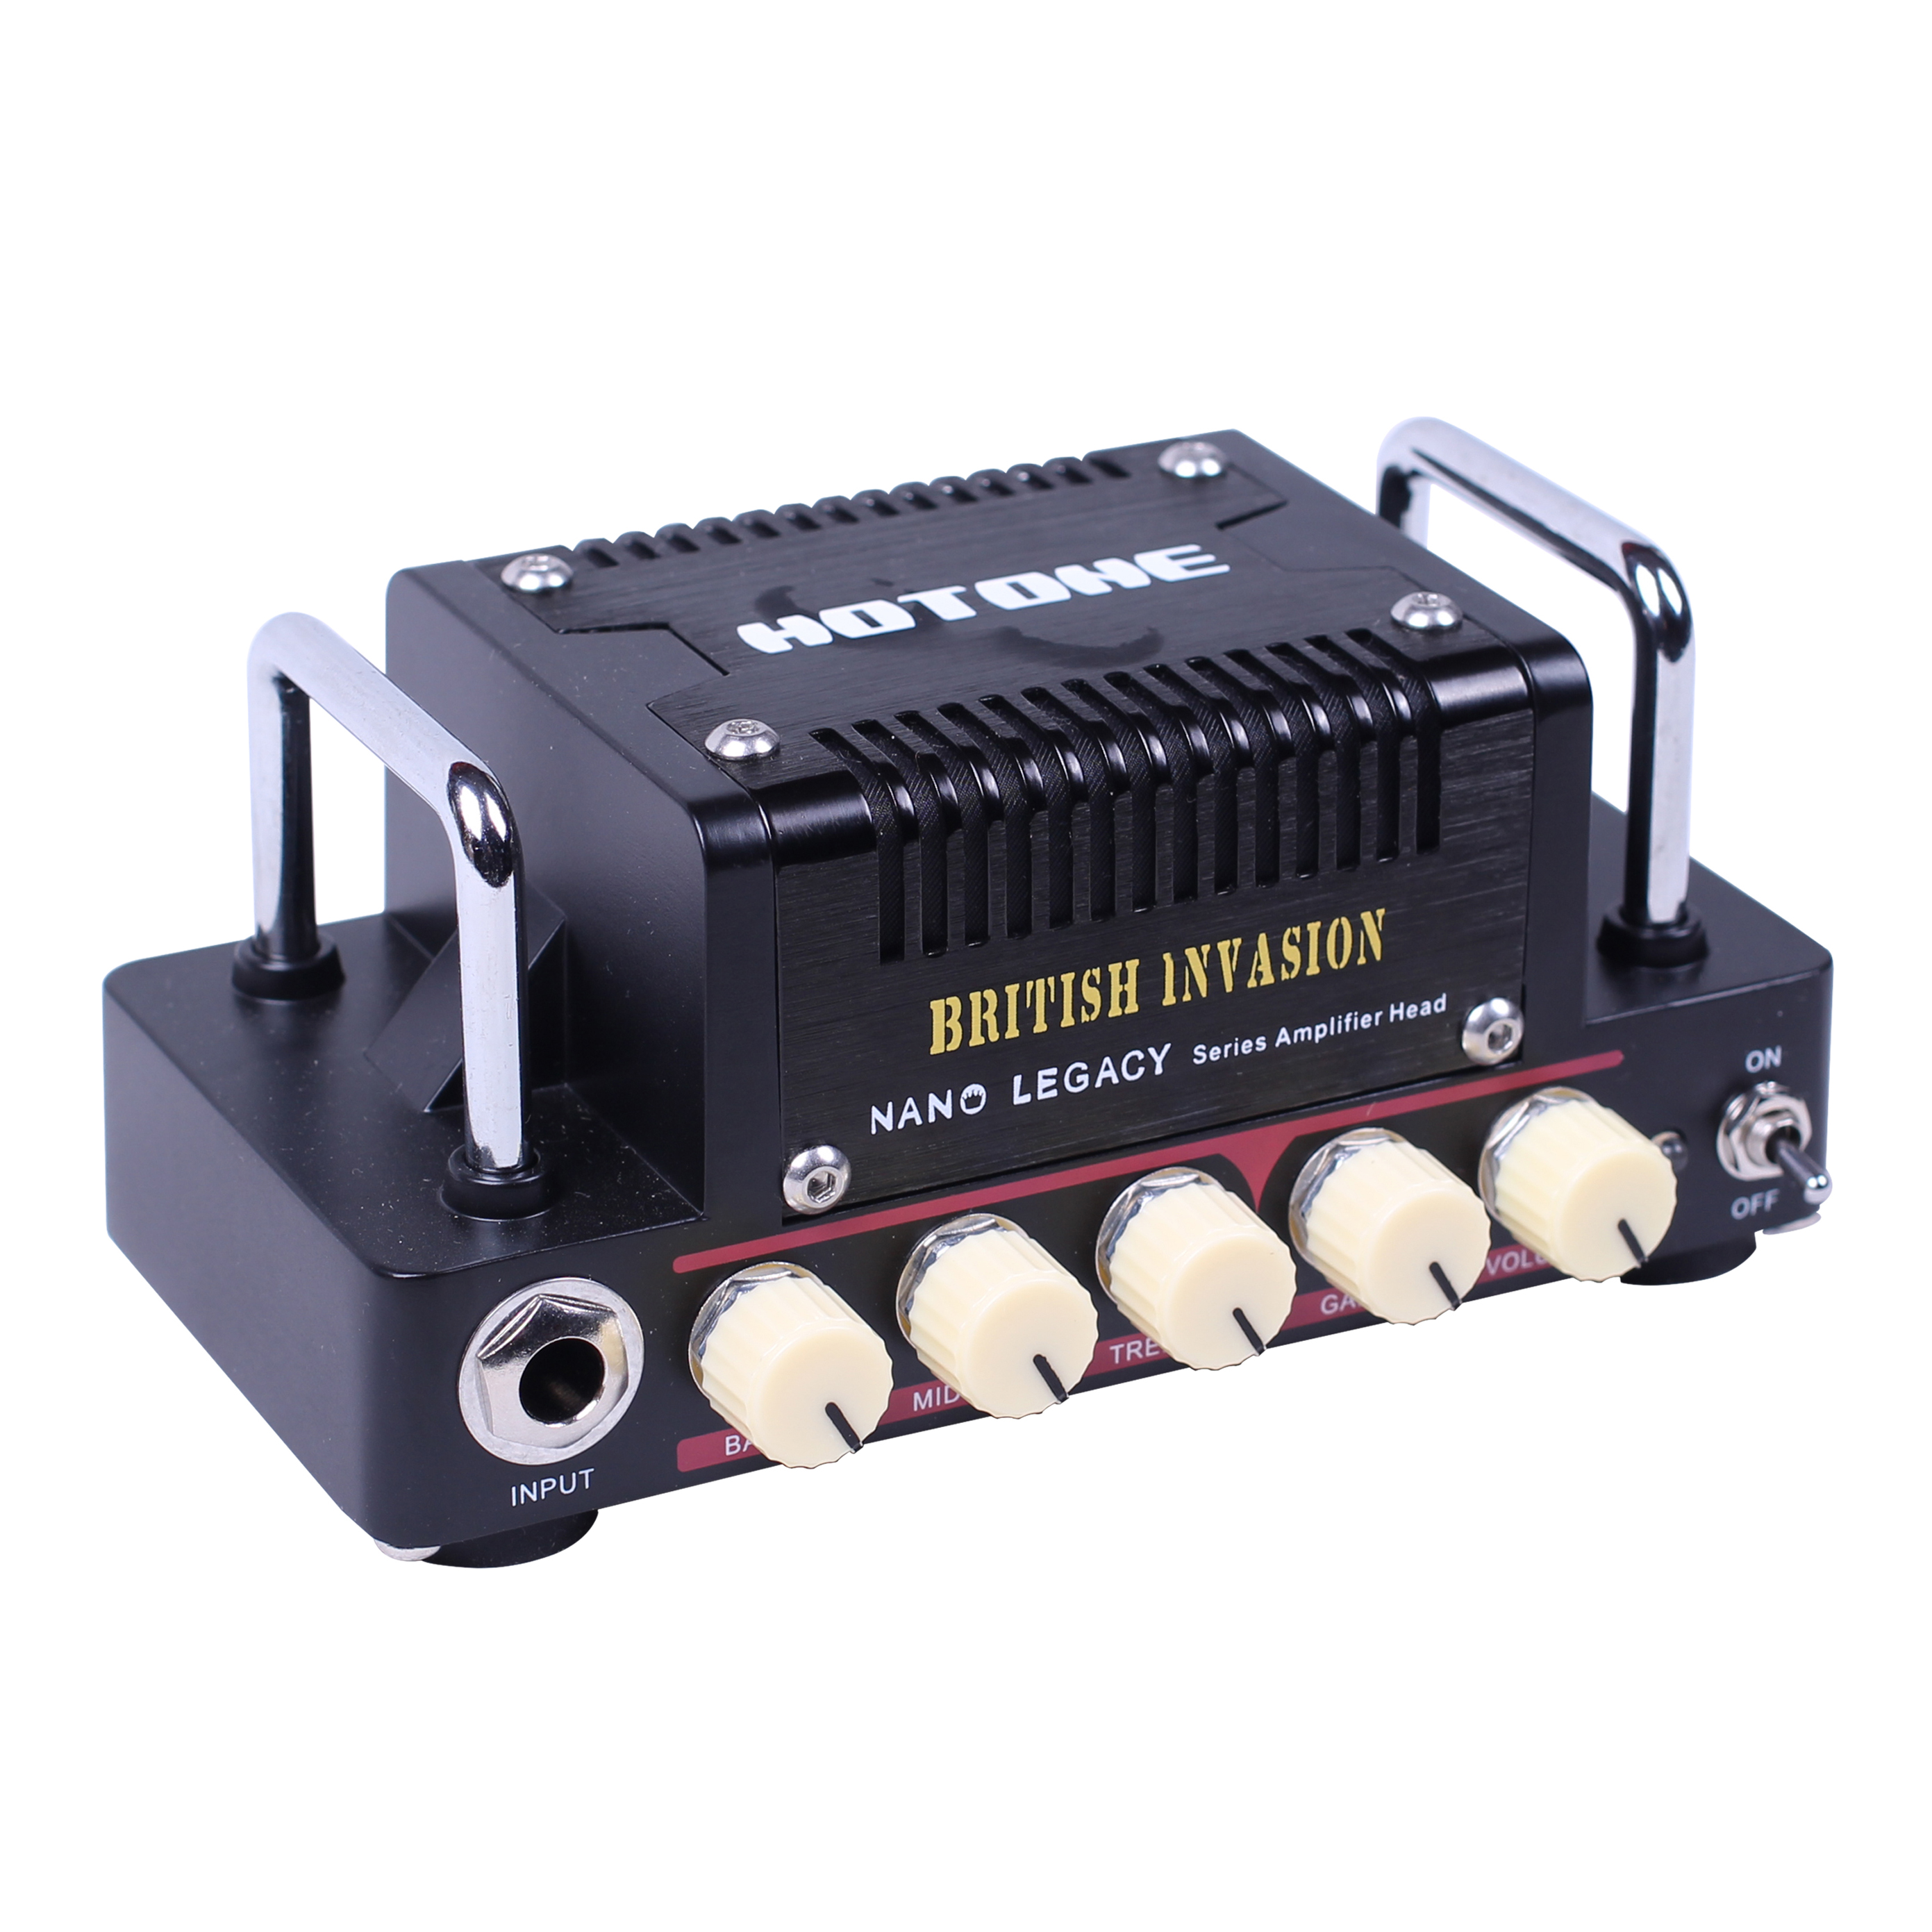 где купить Hotone British Invasion Guitar Amplifier Head Nano Legacy Series 5 Watt Outputs 3 Band EQ controls Electric Guitar Amp по лучшей цене